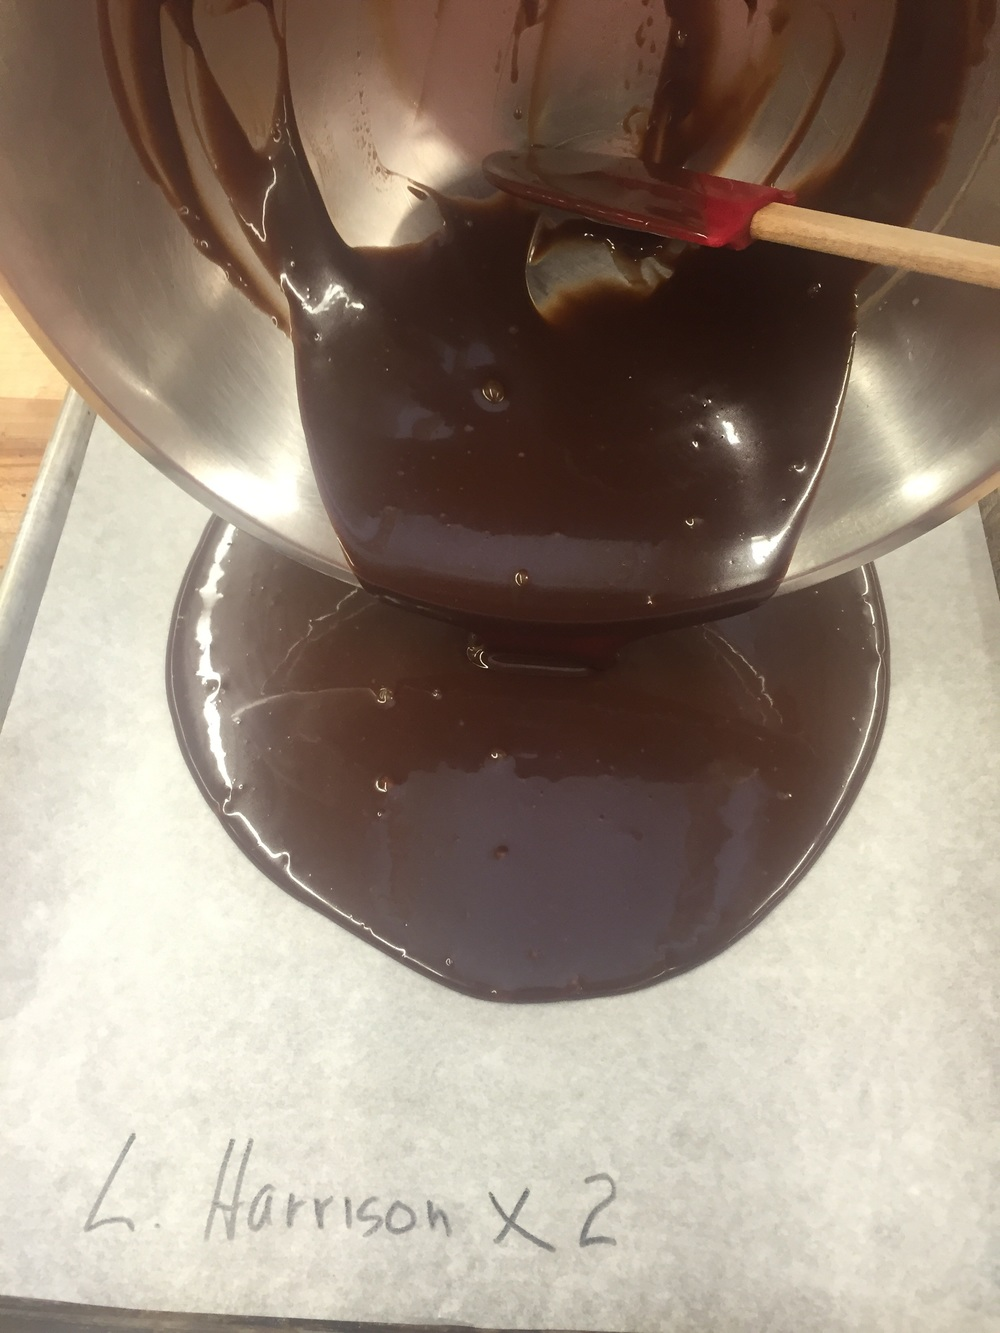 Our chocolate ganache - Mom (Linda) and I will be sharing this batch, so we labeled with our name...times two!